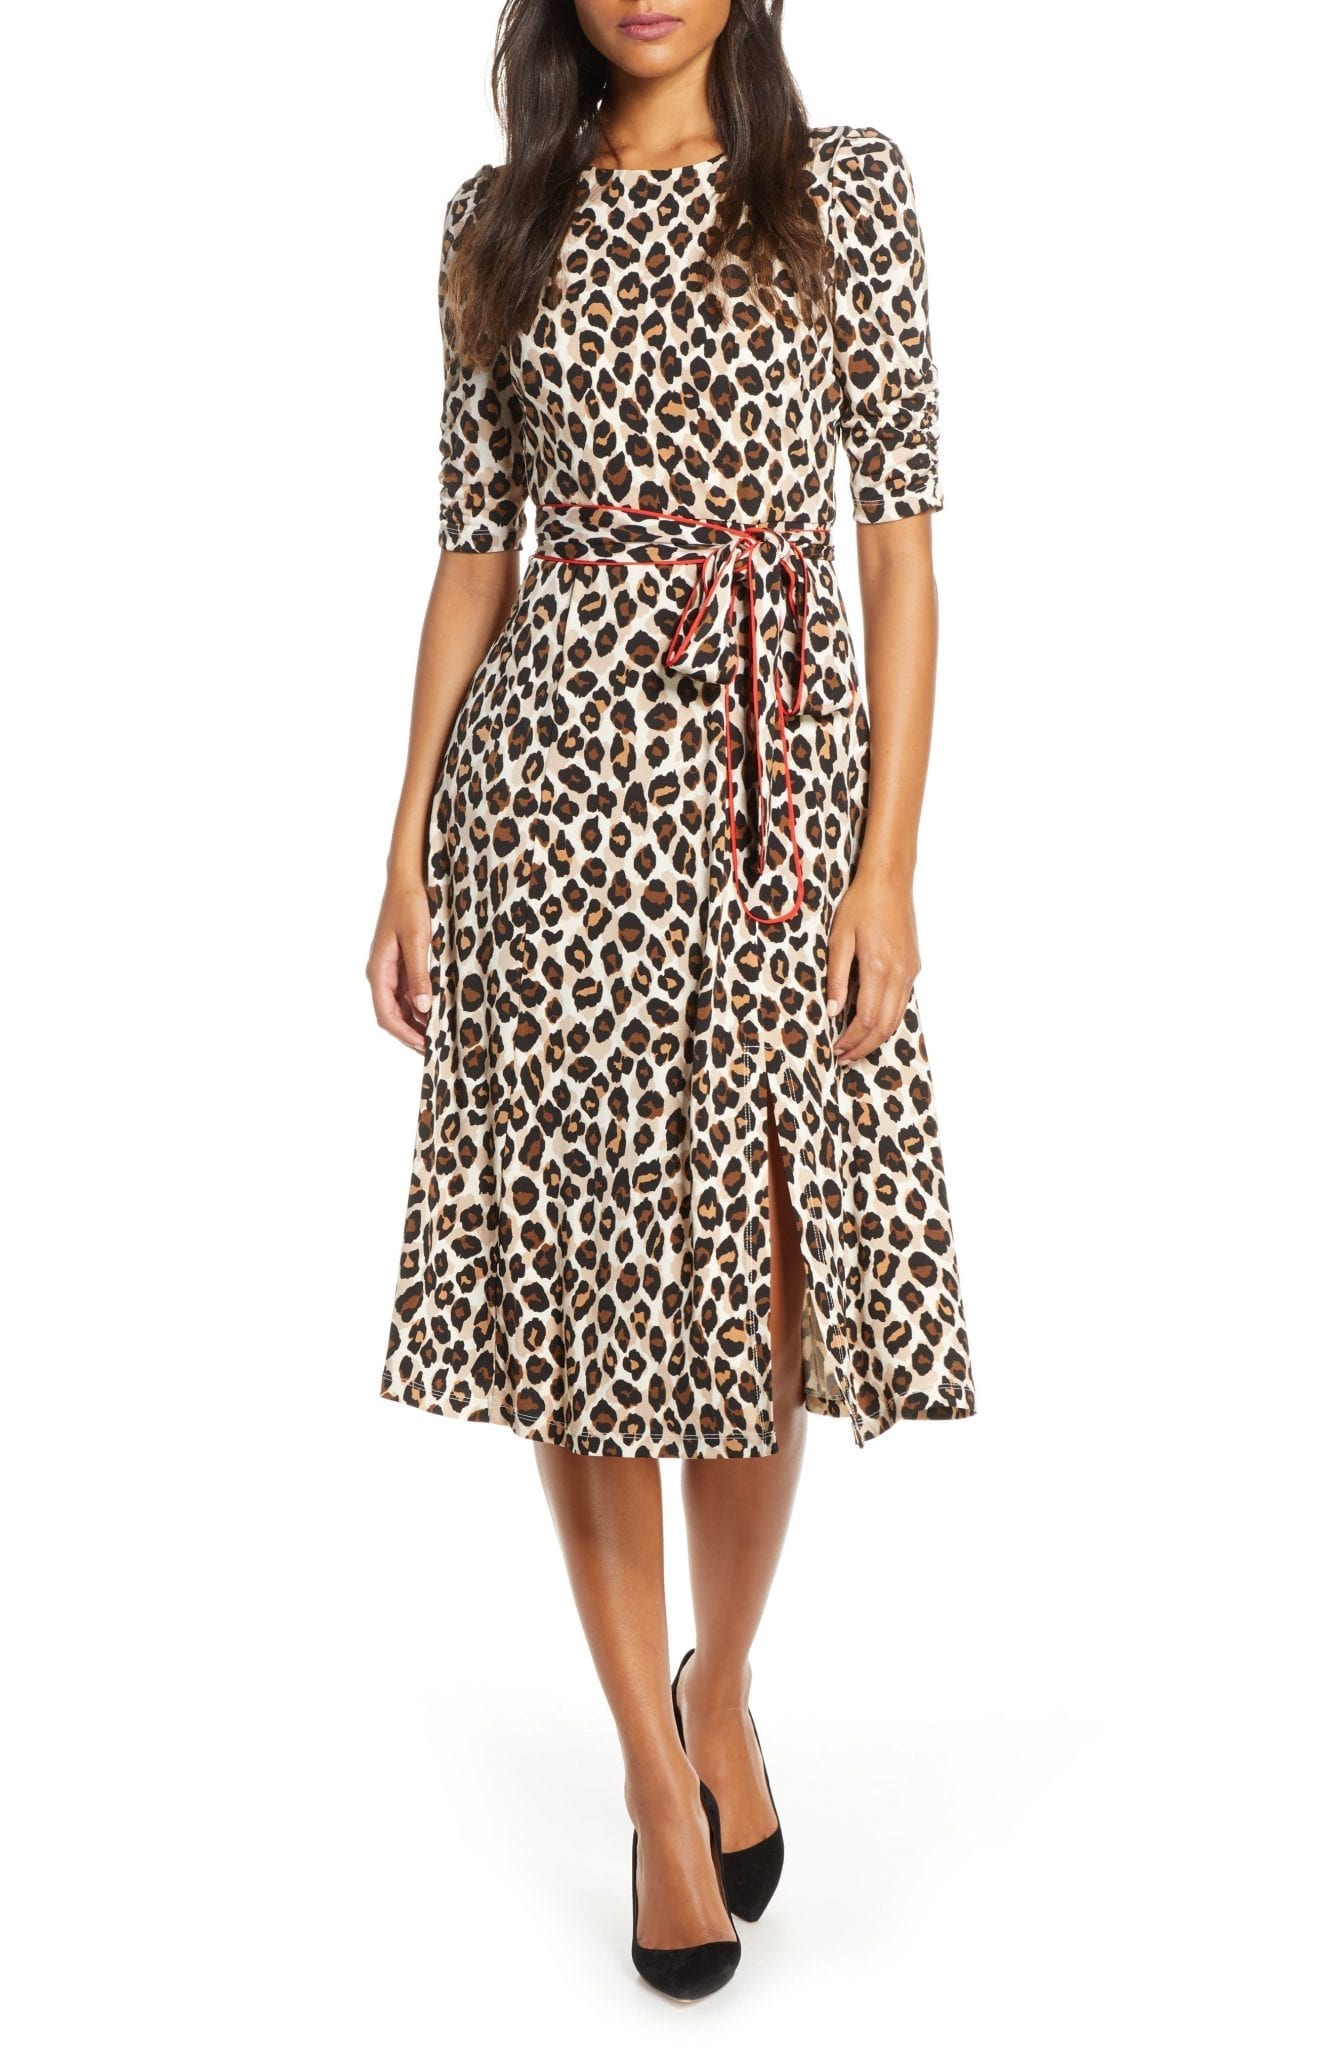 ELIZA J Leopard Print Piped Sash Midi Dress